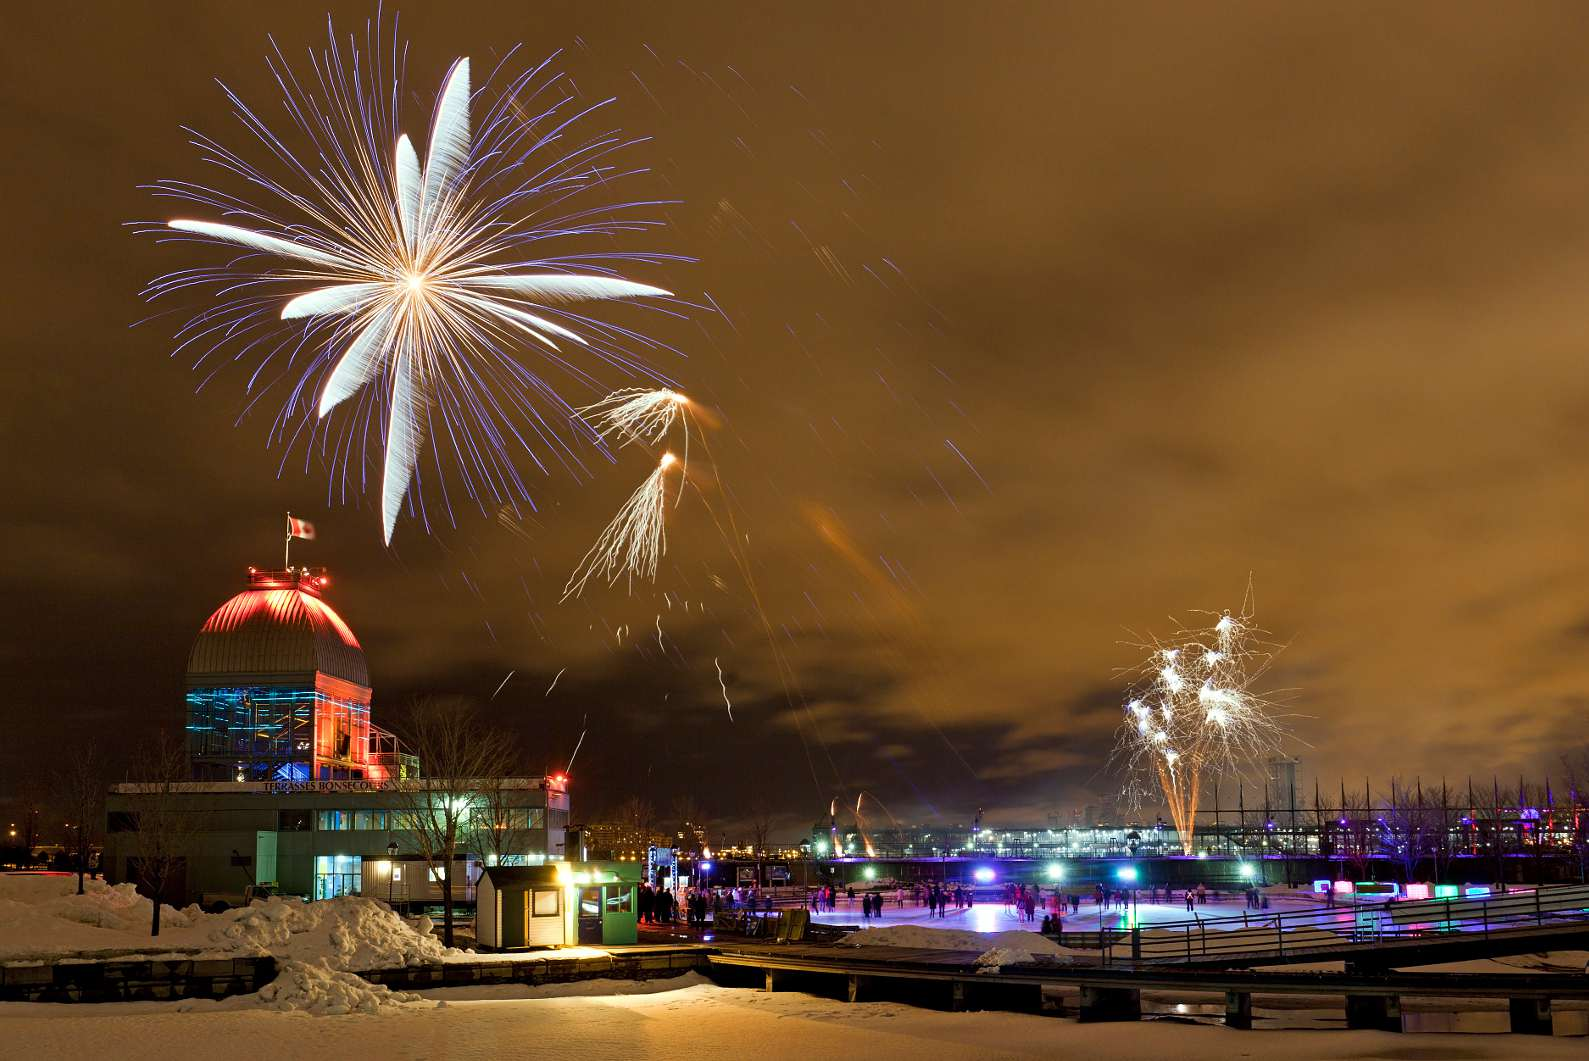 events and attractions for new year's eve in montreal